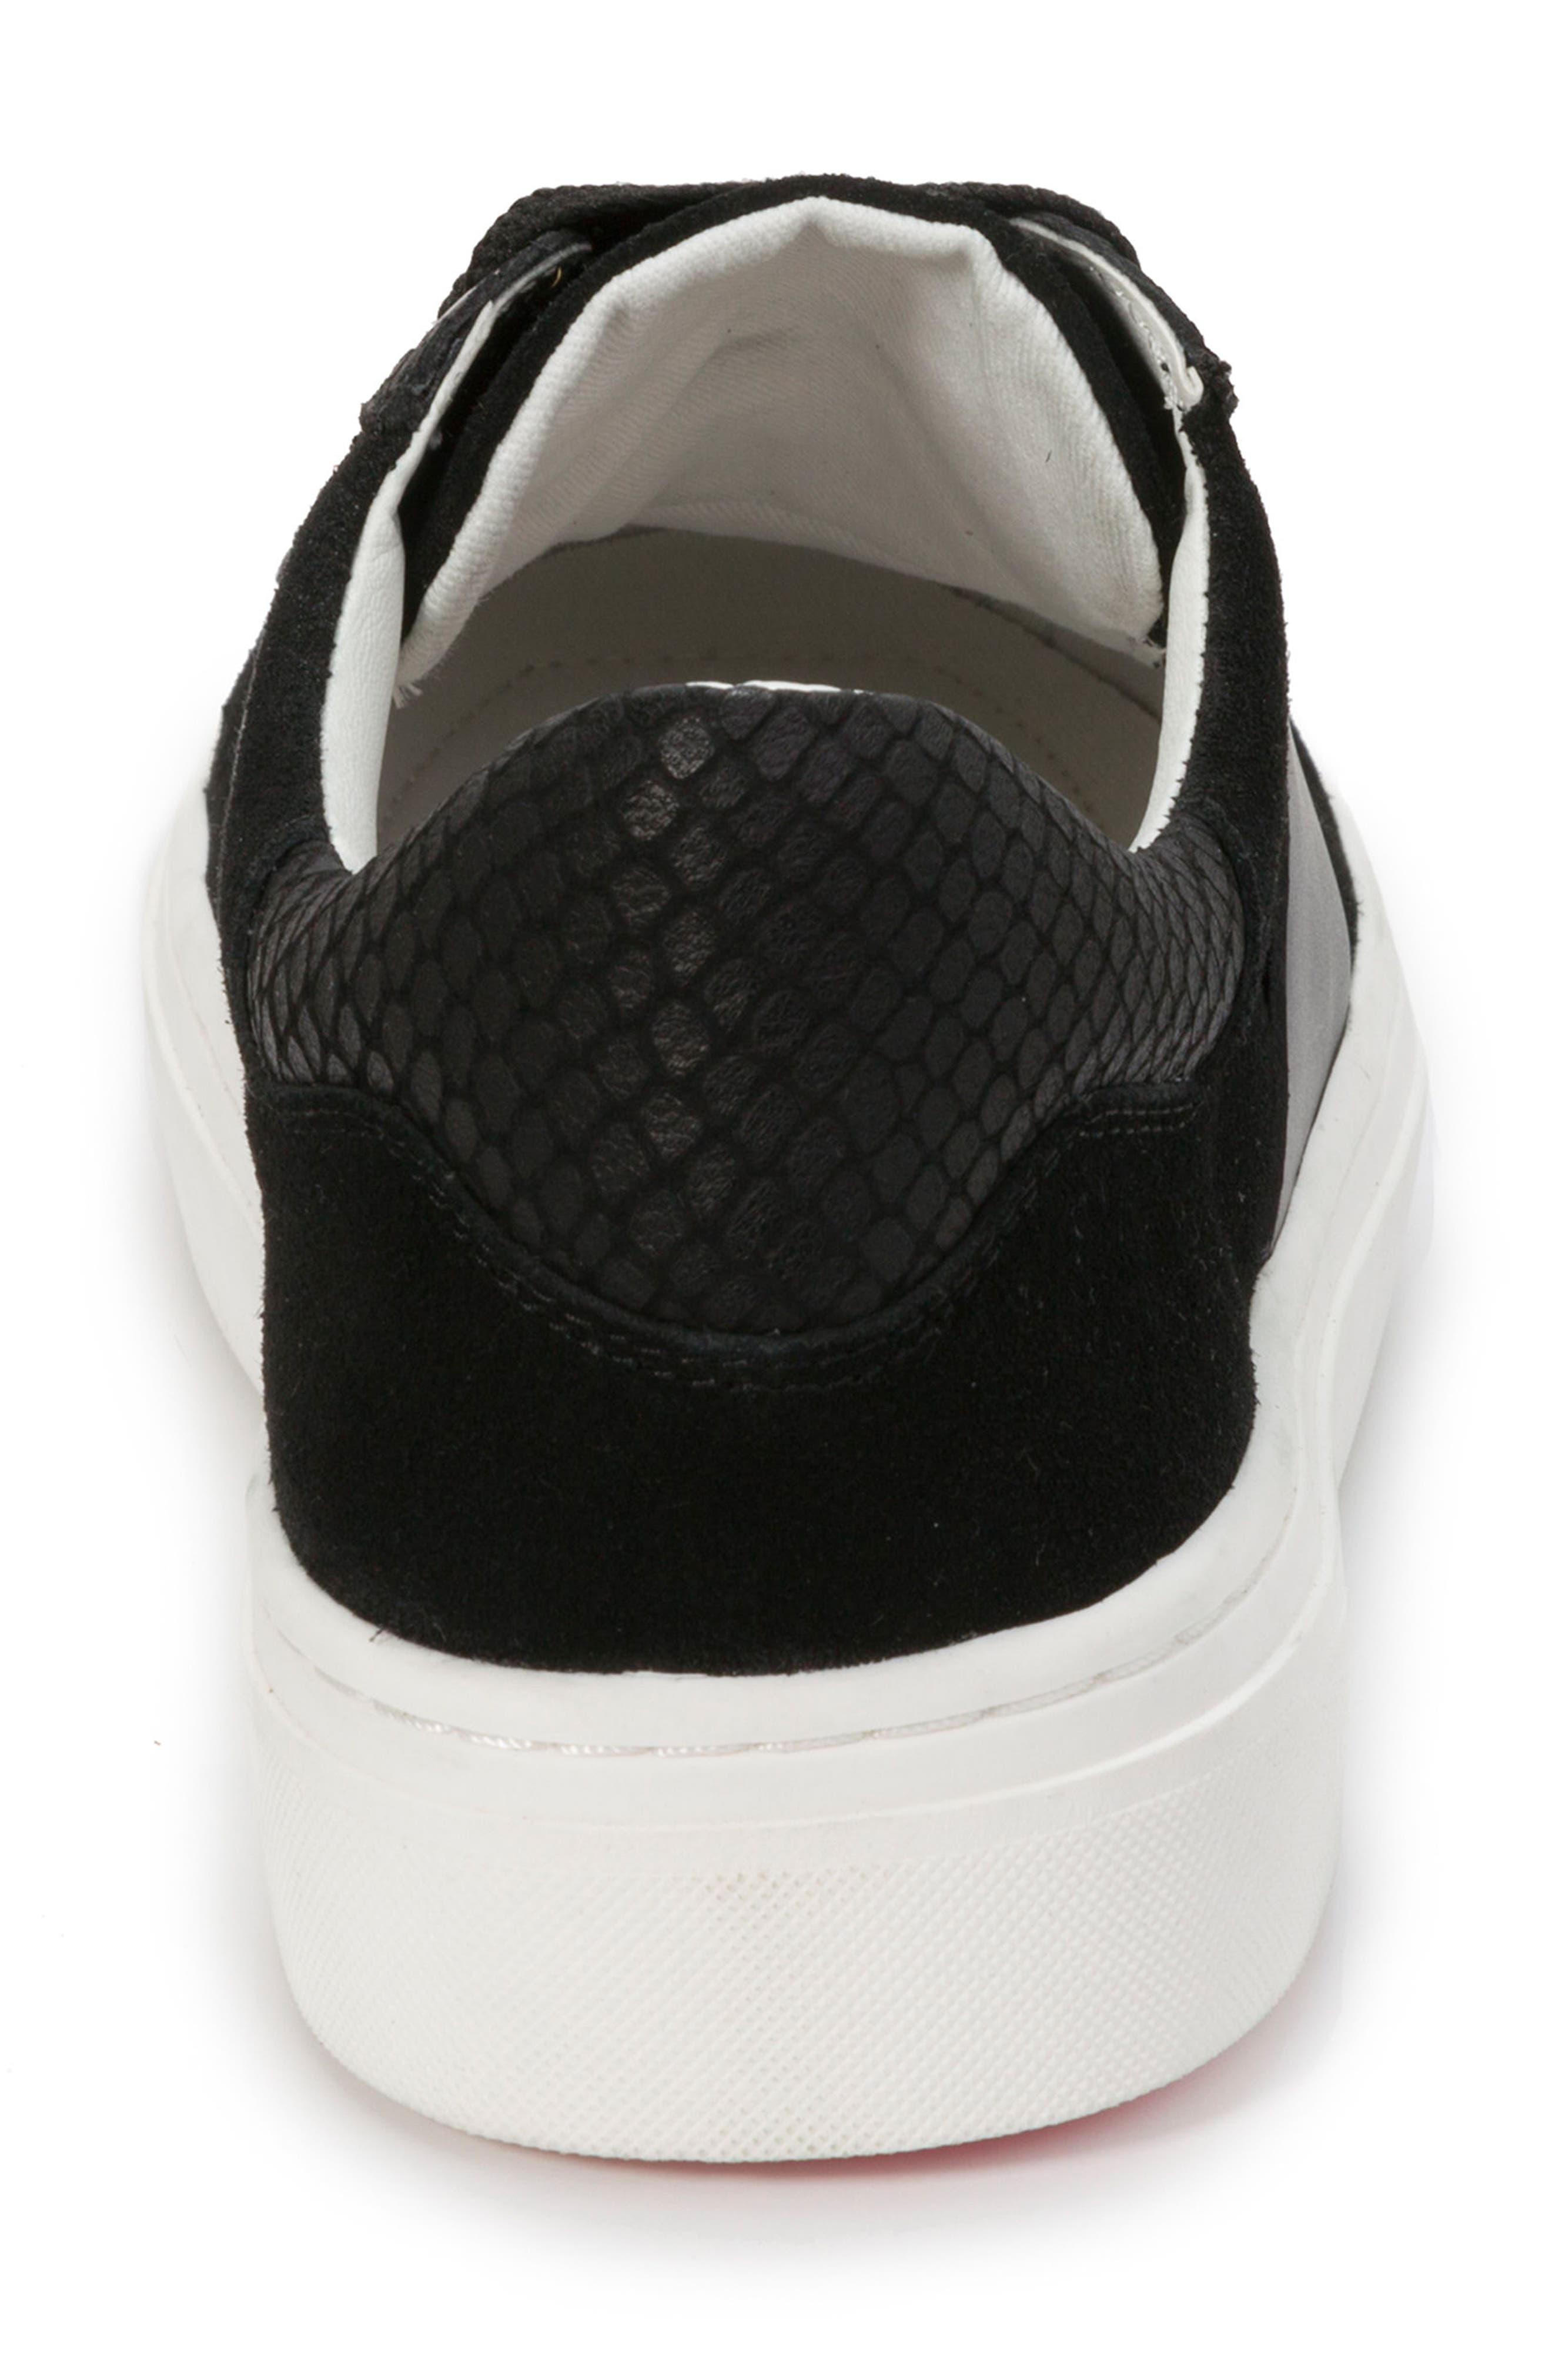 Fallon Sneaker,                             Alternate thumbnail 7, color,                             BLACK SUEDE